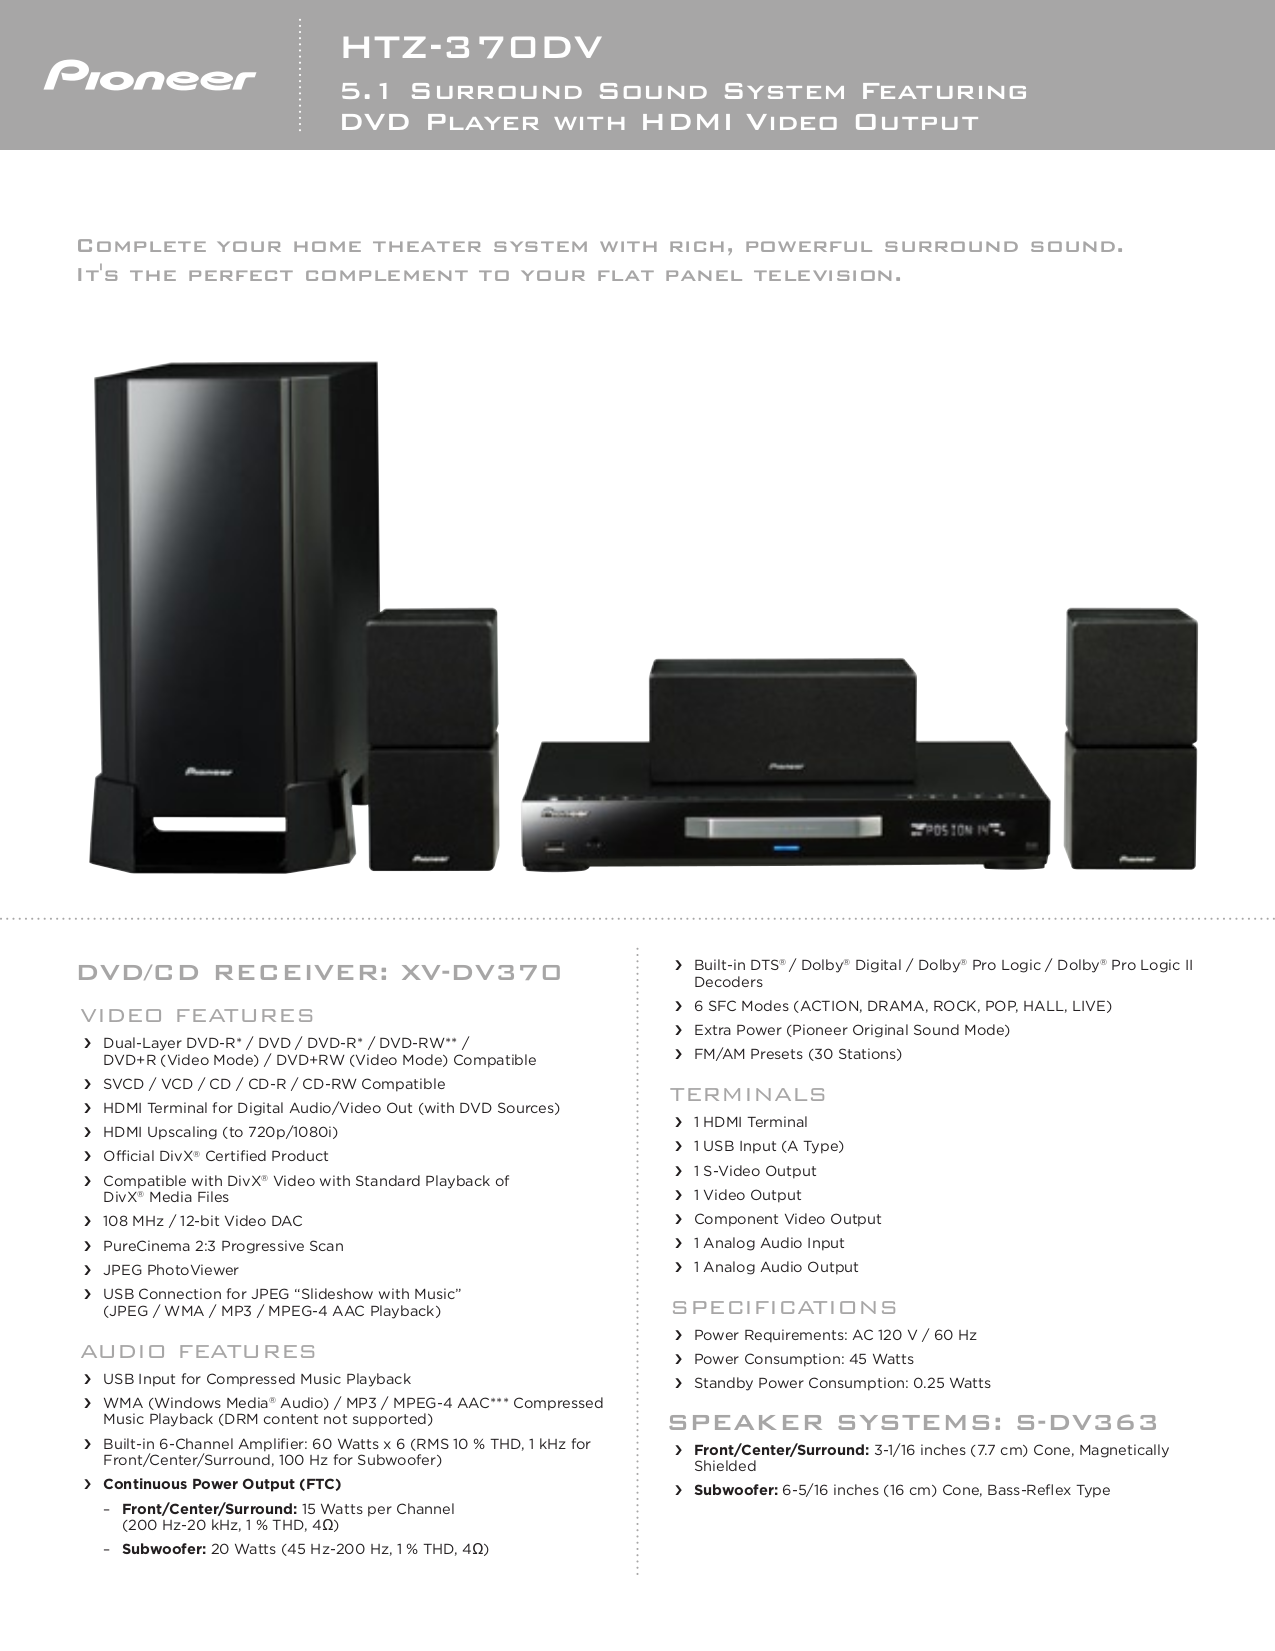 download free pdf for pioneer htz 370dv home theater manual rh umlib com home theater pioneer todoroki manual pioneer 5.1 home theater system htp-074 manual